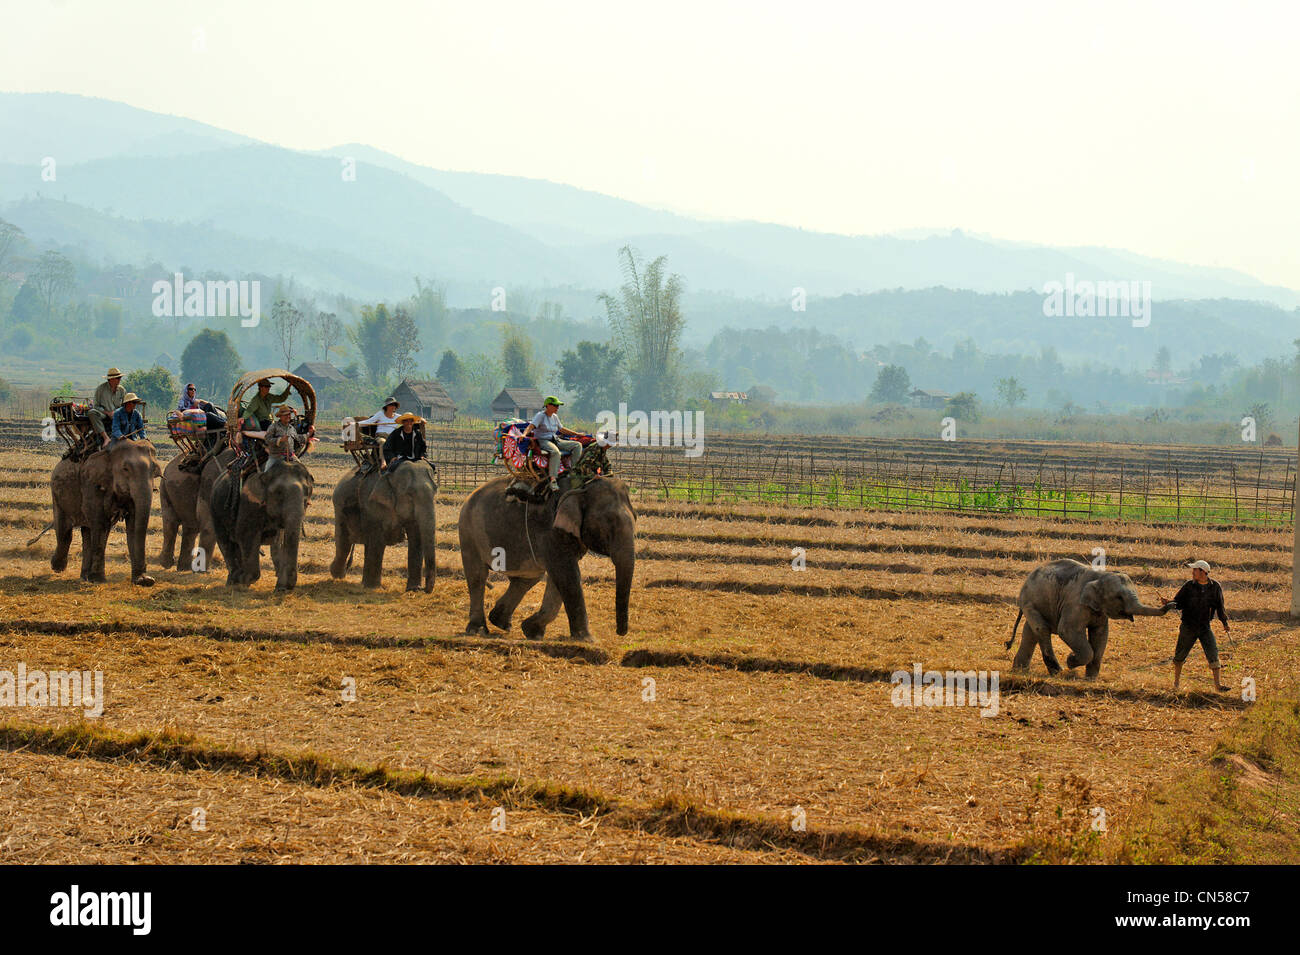 Laos, Sainyabuli Province, Hongsa, trek on elephant's back in rice fields - Stock Image